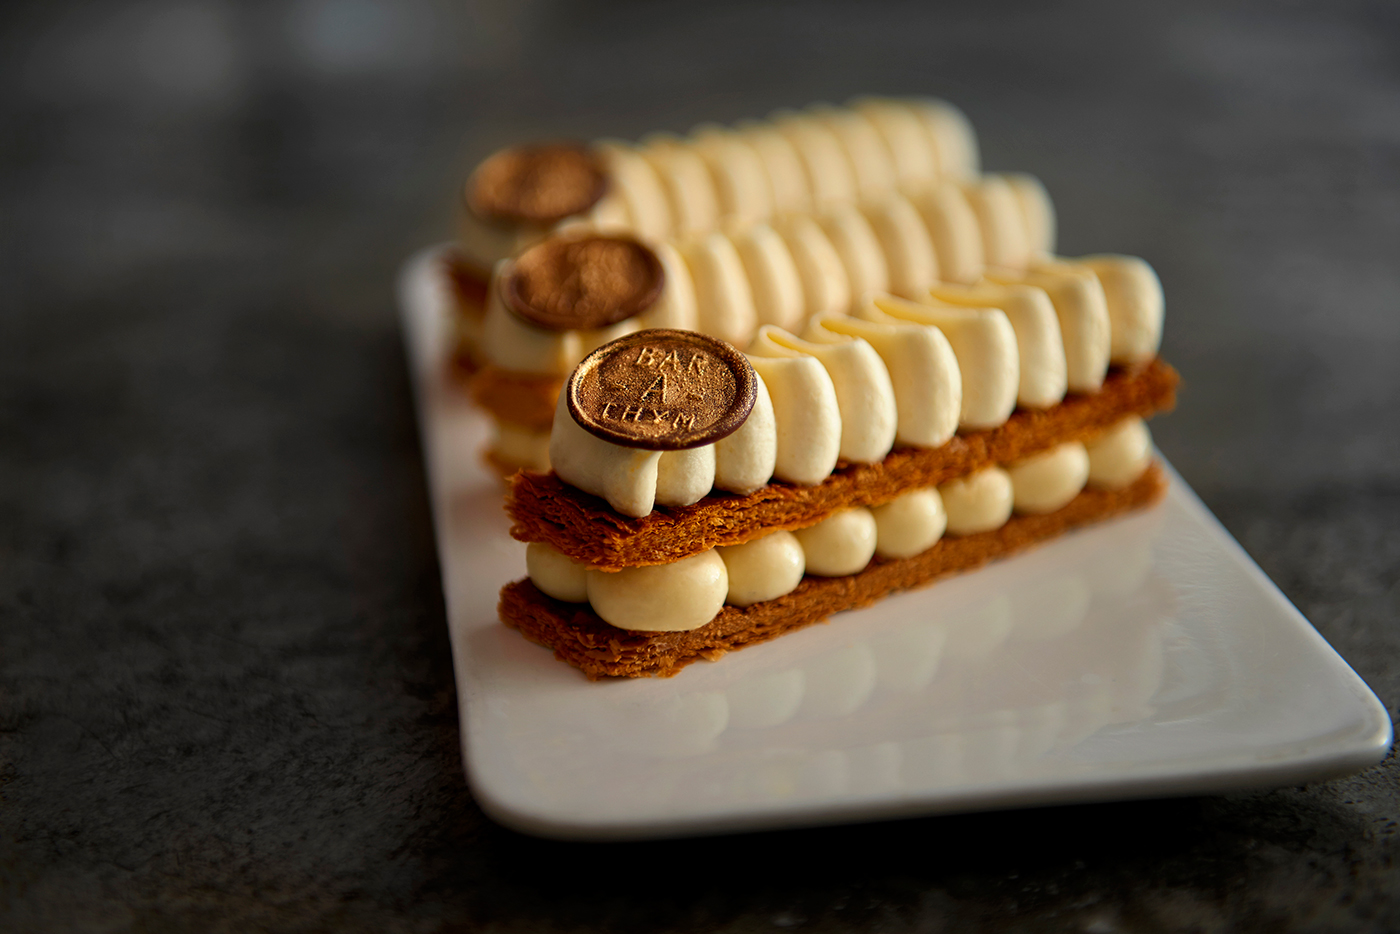 Bar-A-Thym-French-Restaurant-by-Francois Mermilliod-Vanilla-Bourbon-Millefeuille.jpg